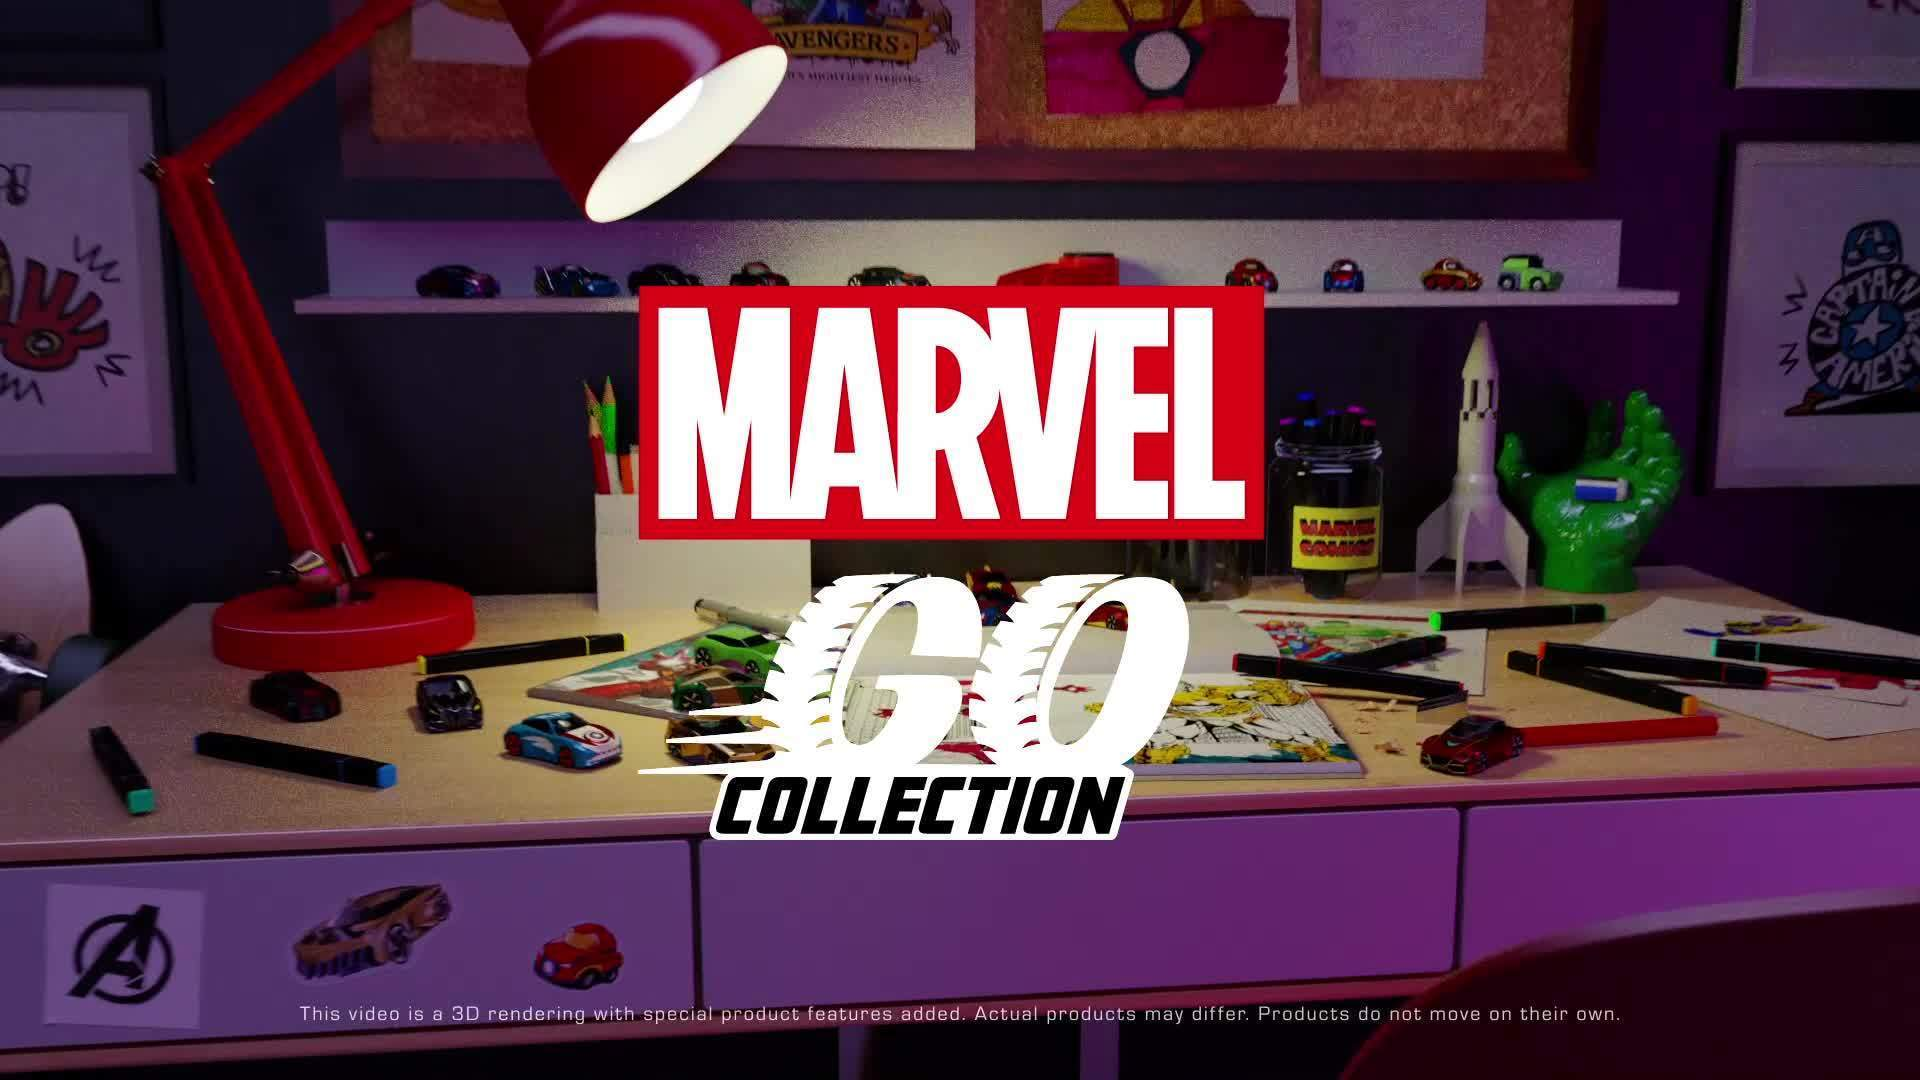 Marvel GO Collection